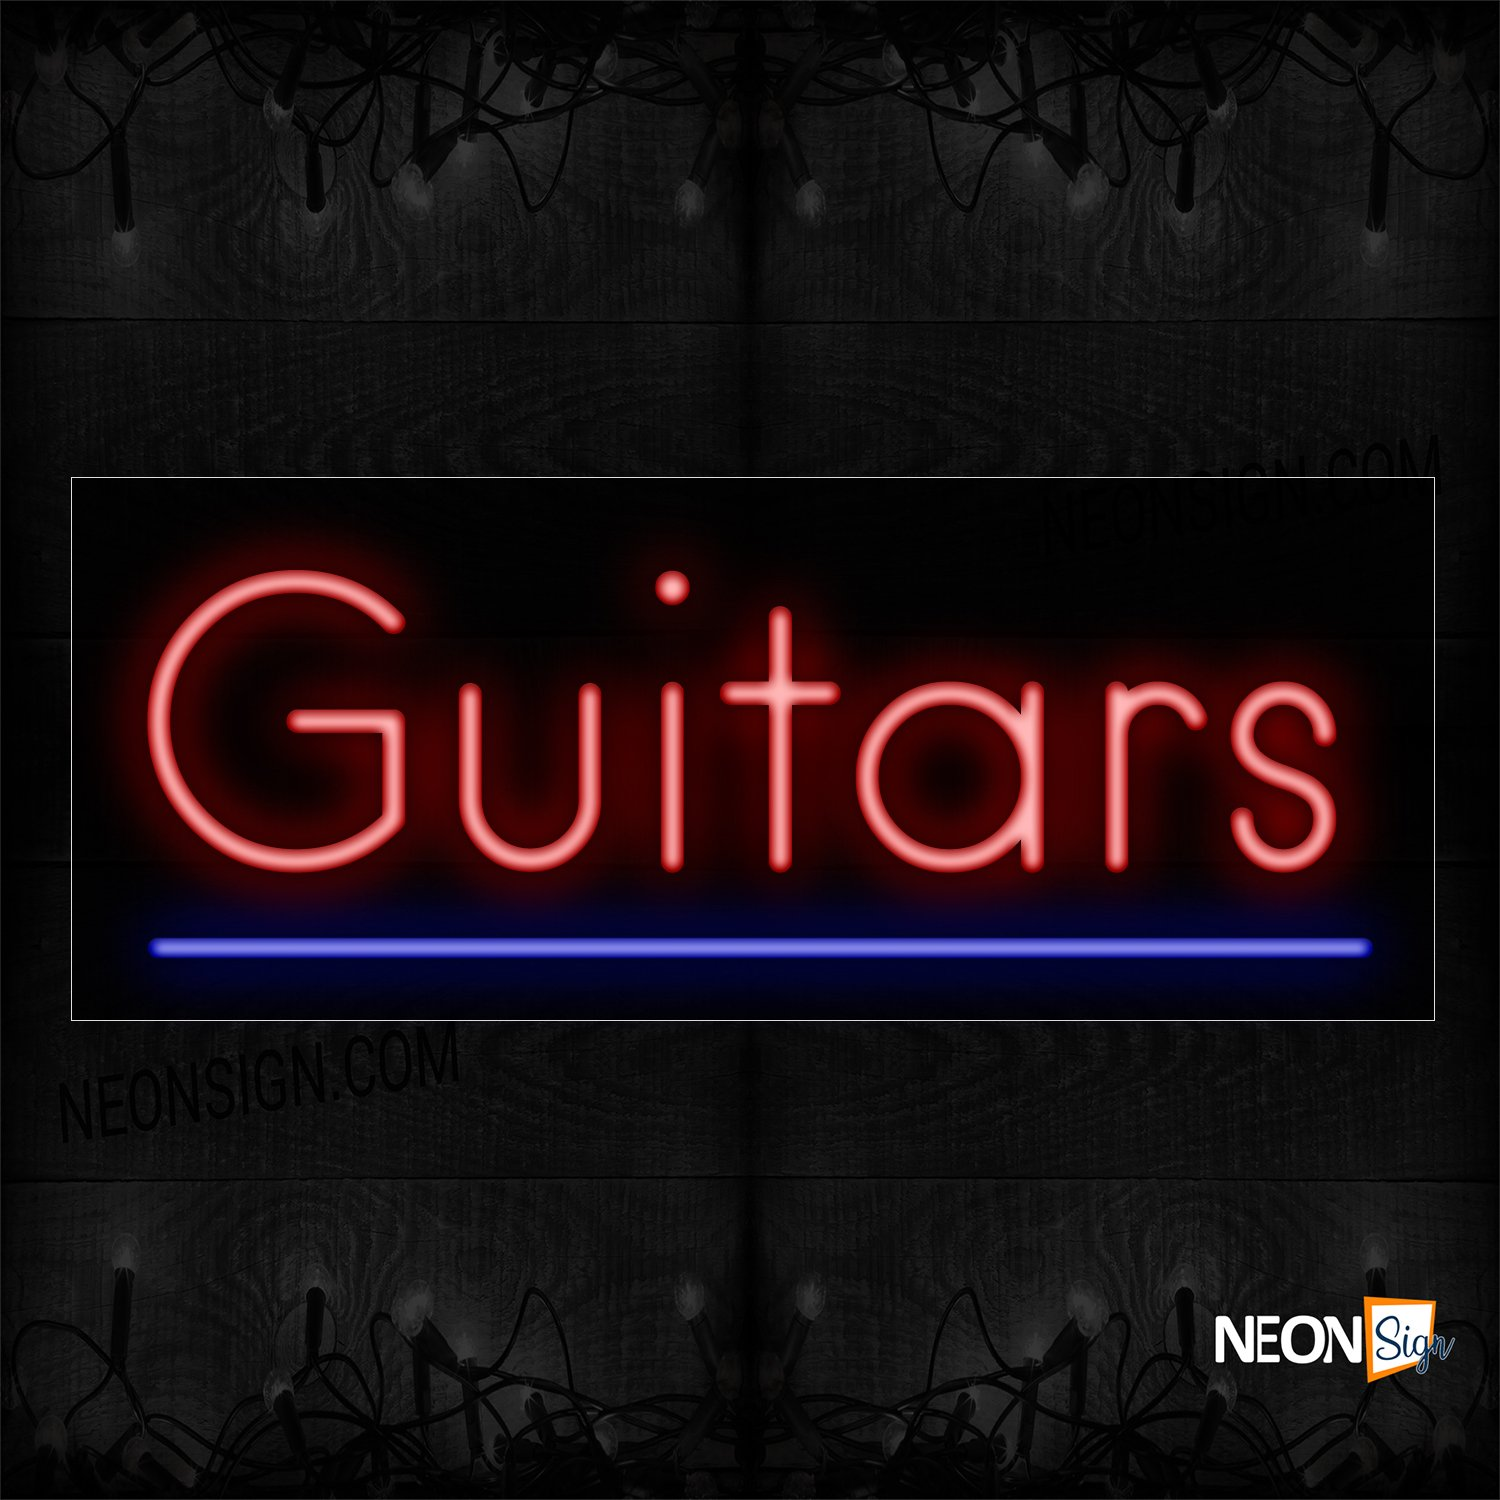 Image of 12374 Guitars With Underline Neon Sign_10x24 Black Backing